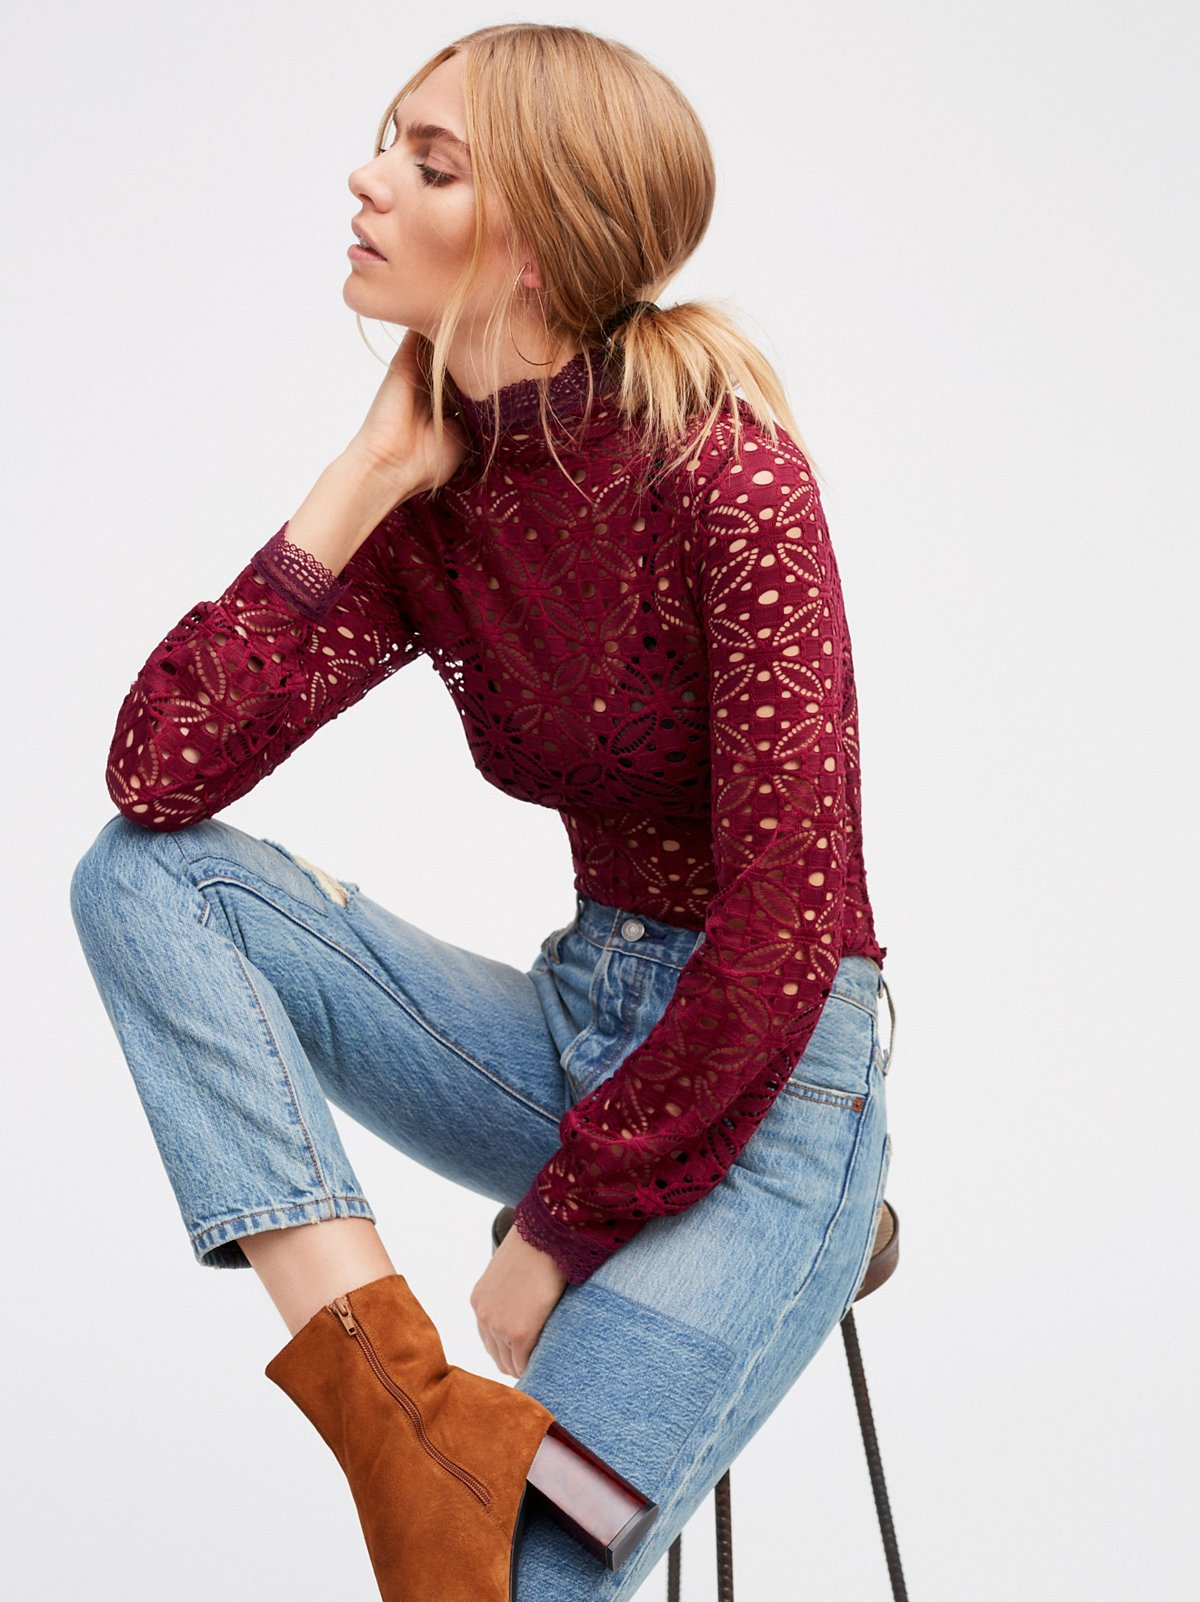 Free People High Neck Julie Layering Top - 10 Seductive Burgundy Pieces for Fall